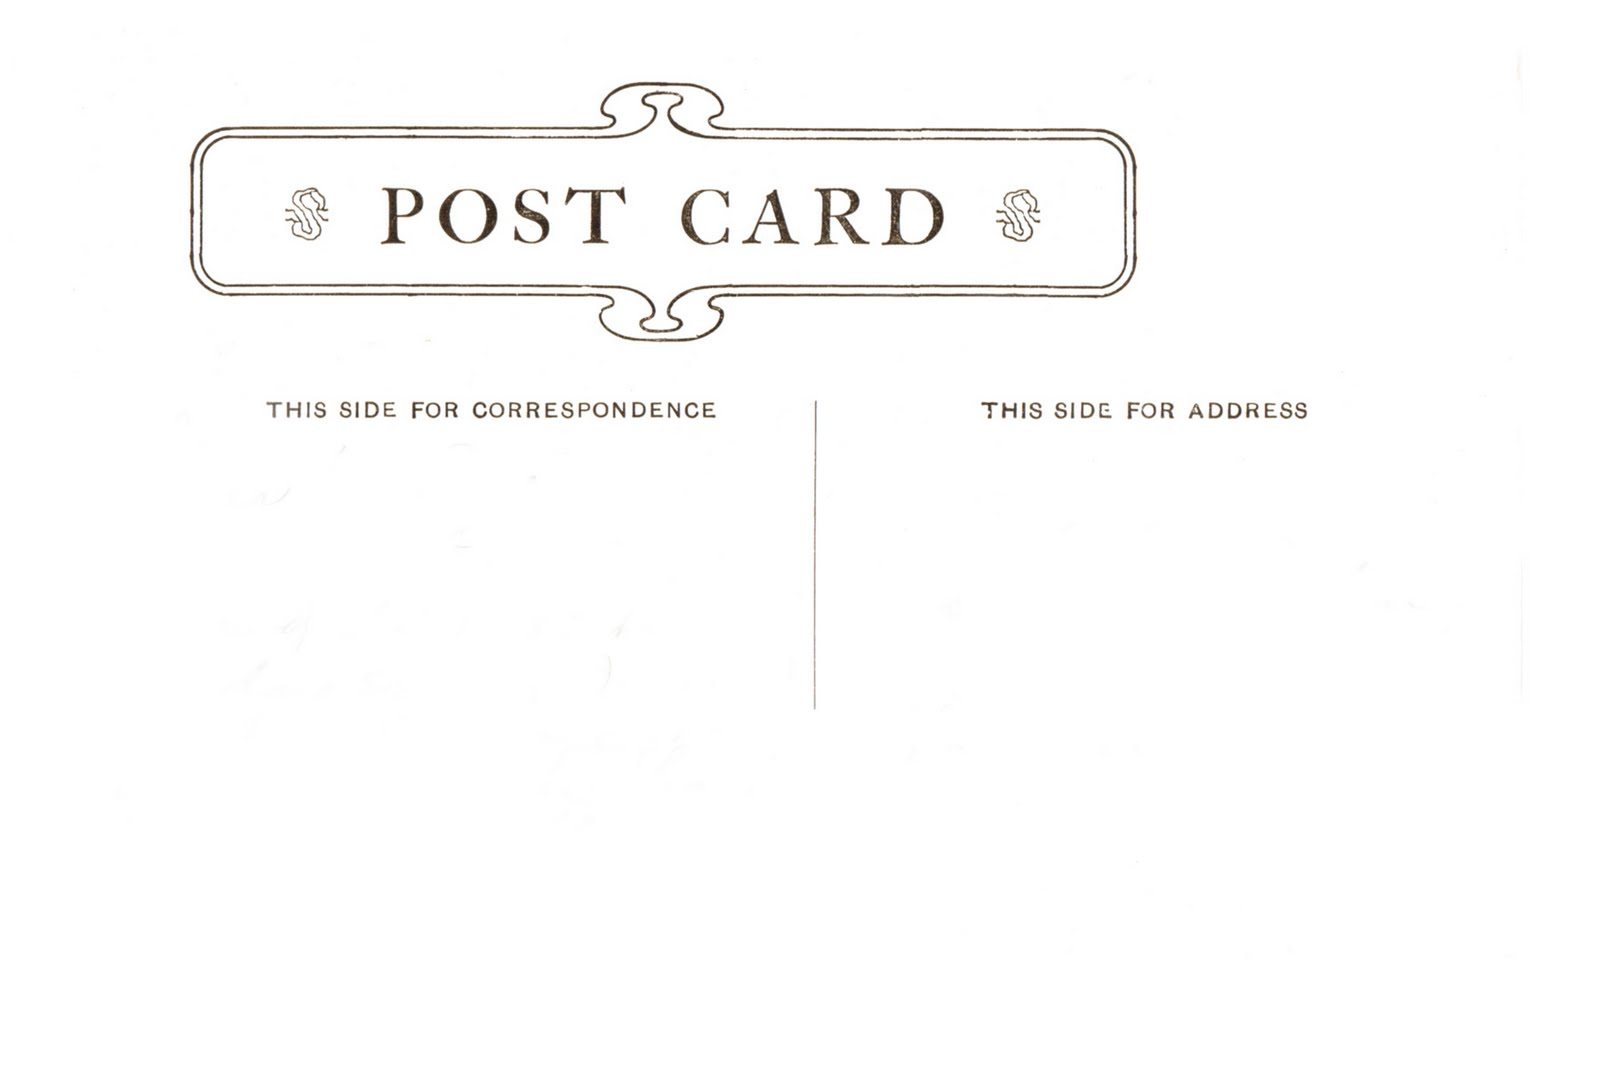 Postcard Template - Postcard template with lines